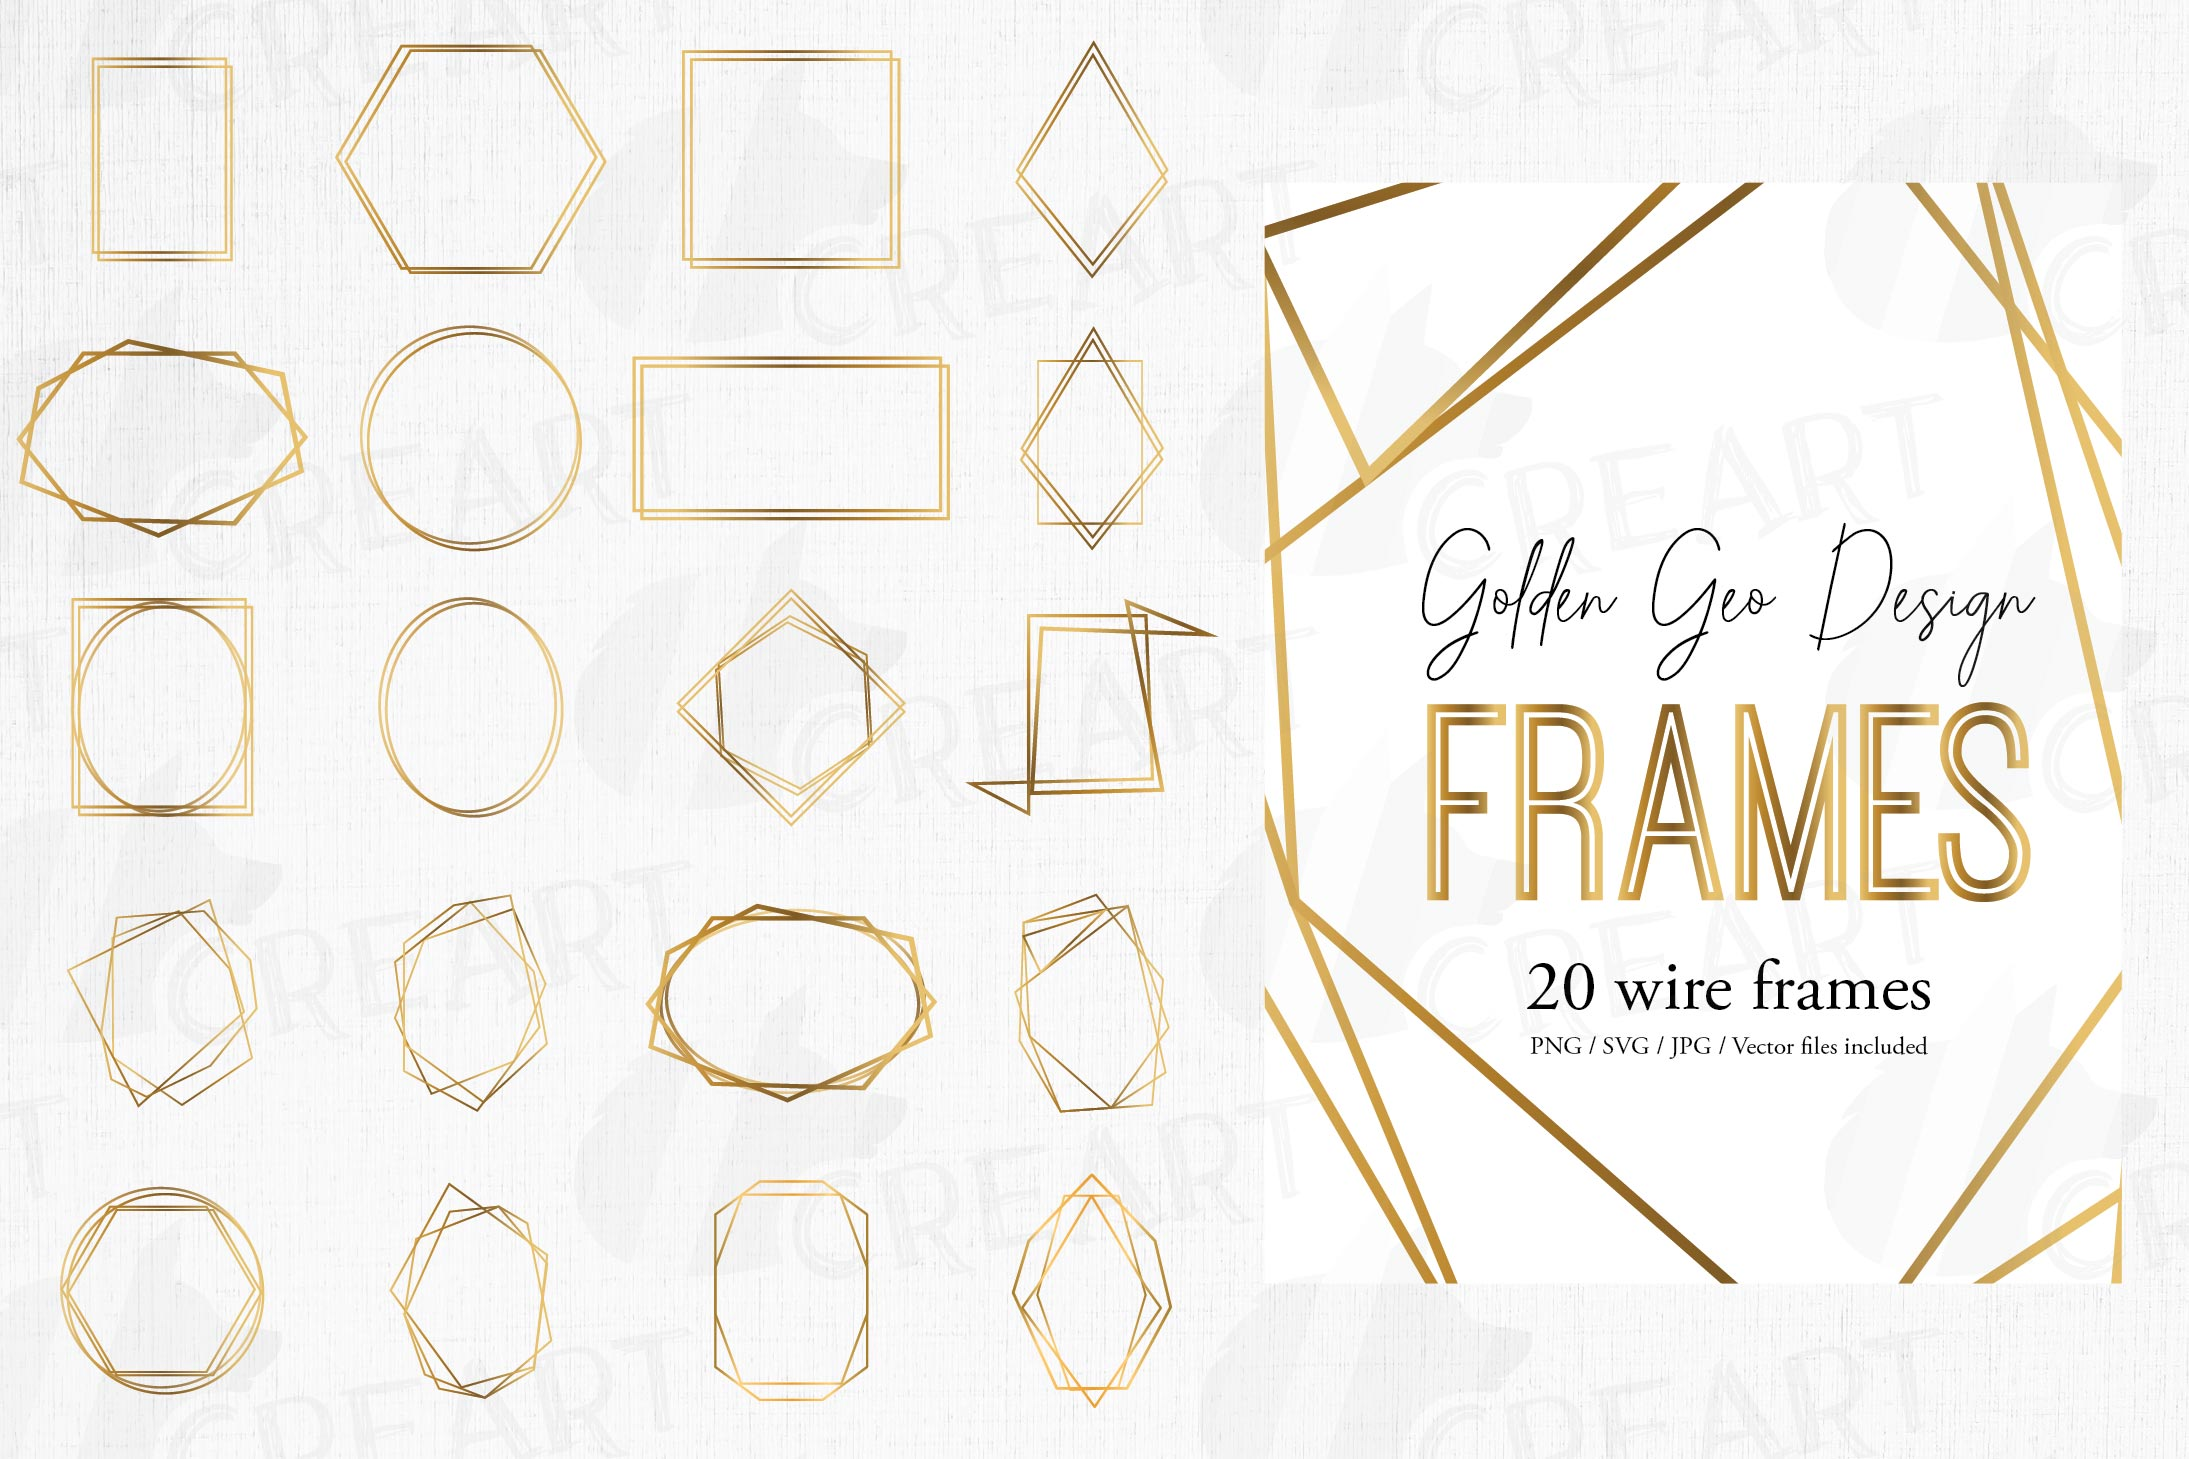 Golden geometric frames clip art. Wedding invite geo borders example image 1